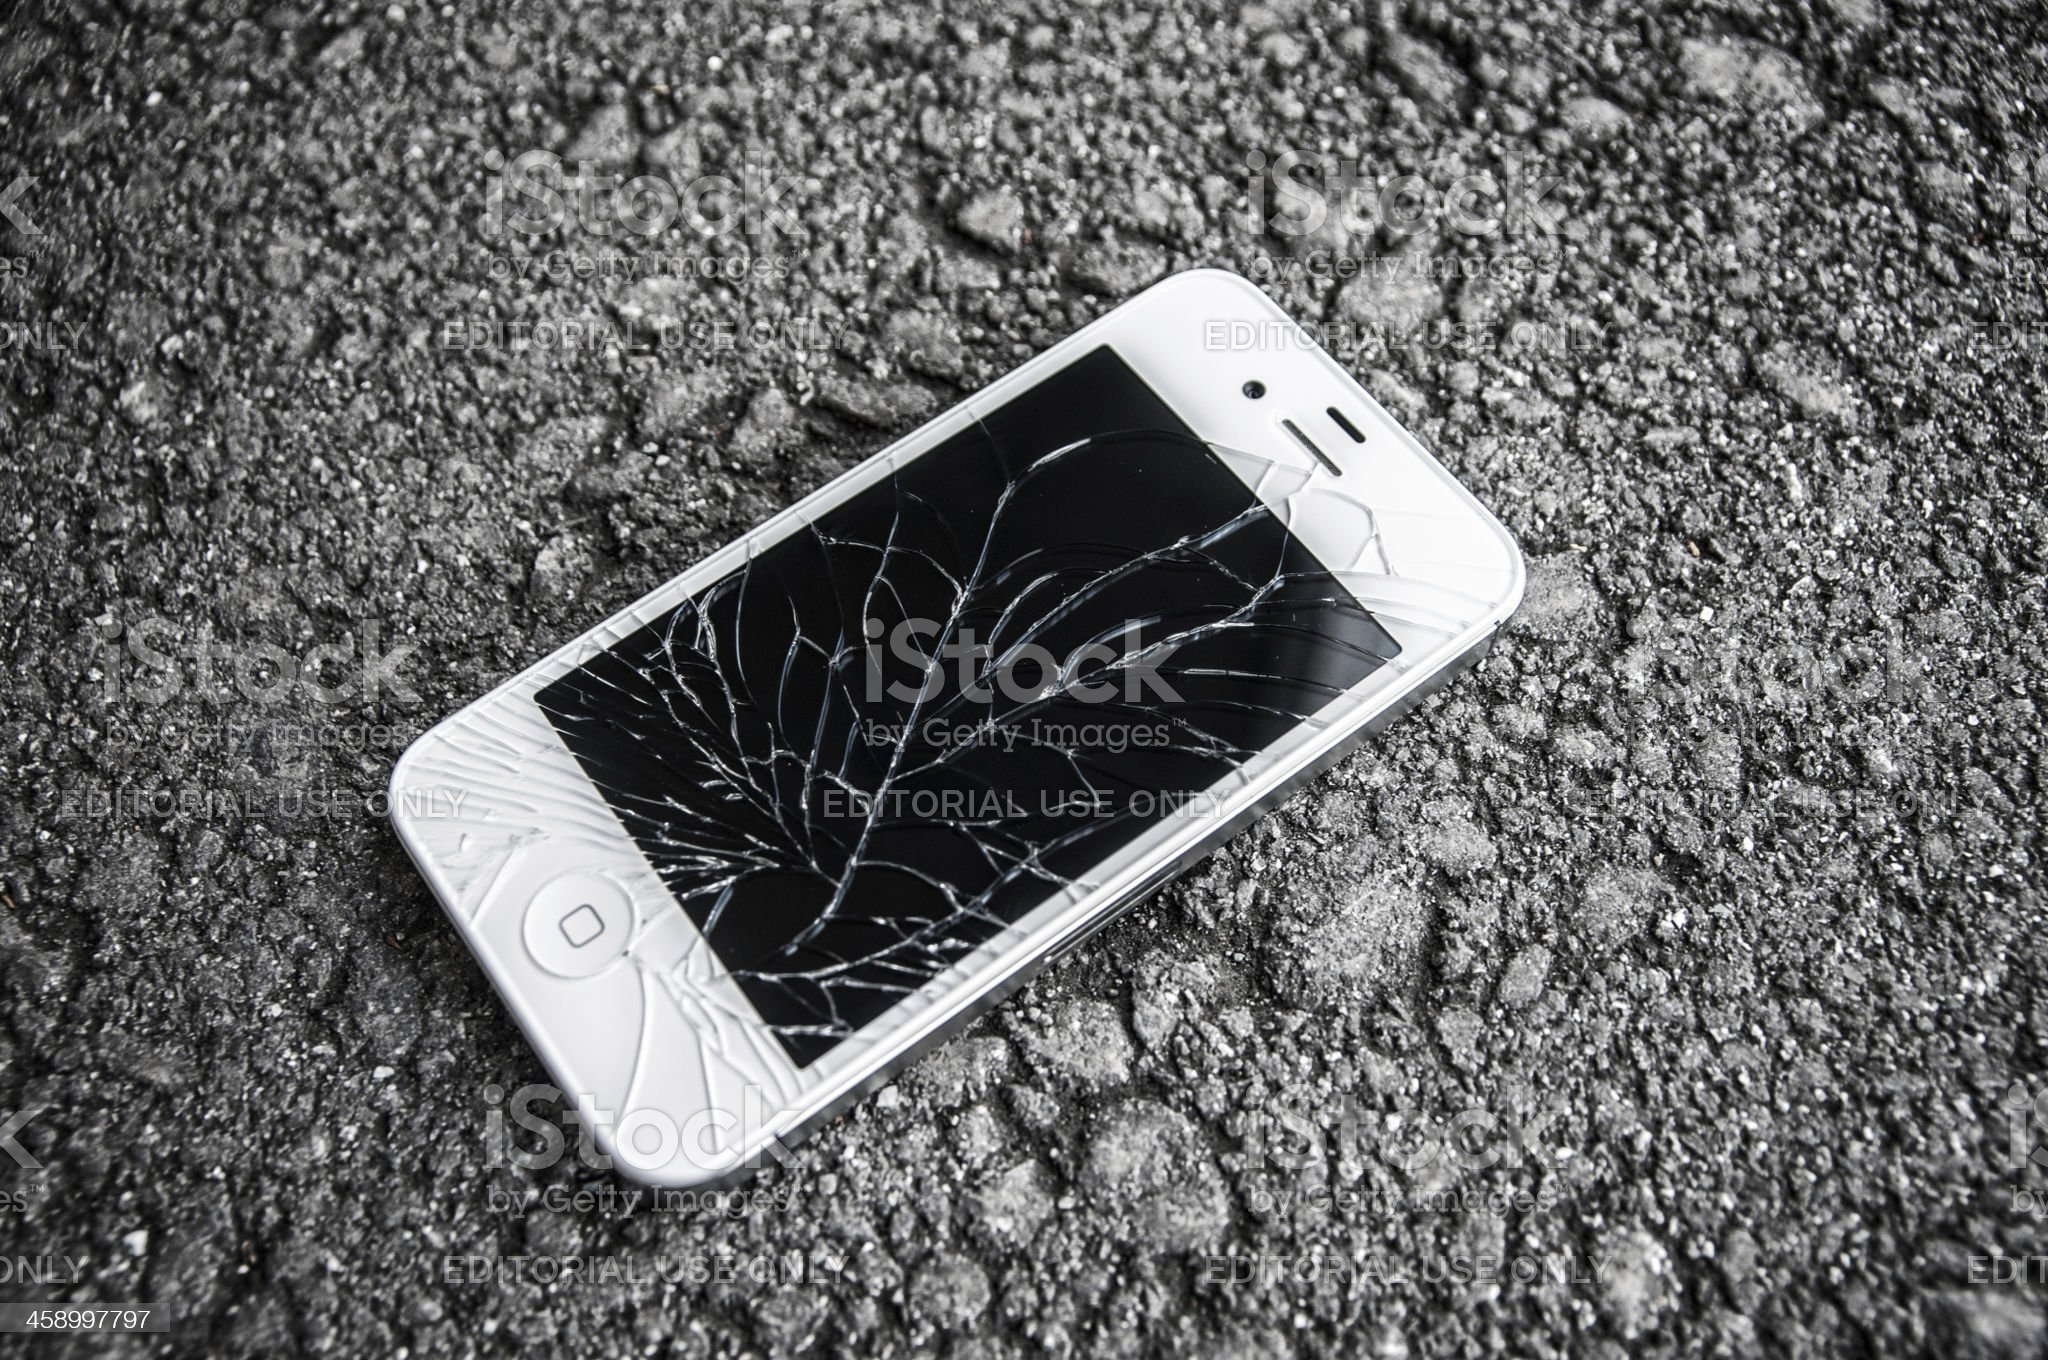 white iPhone 4s with broken retina display laying on asphalt royalty-free stock photo